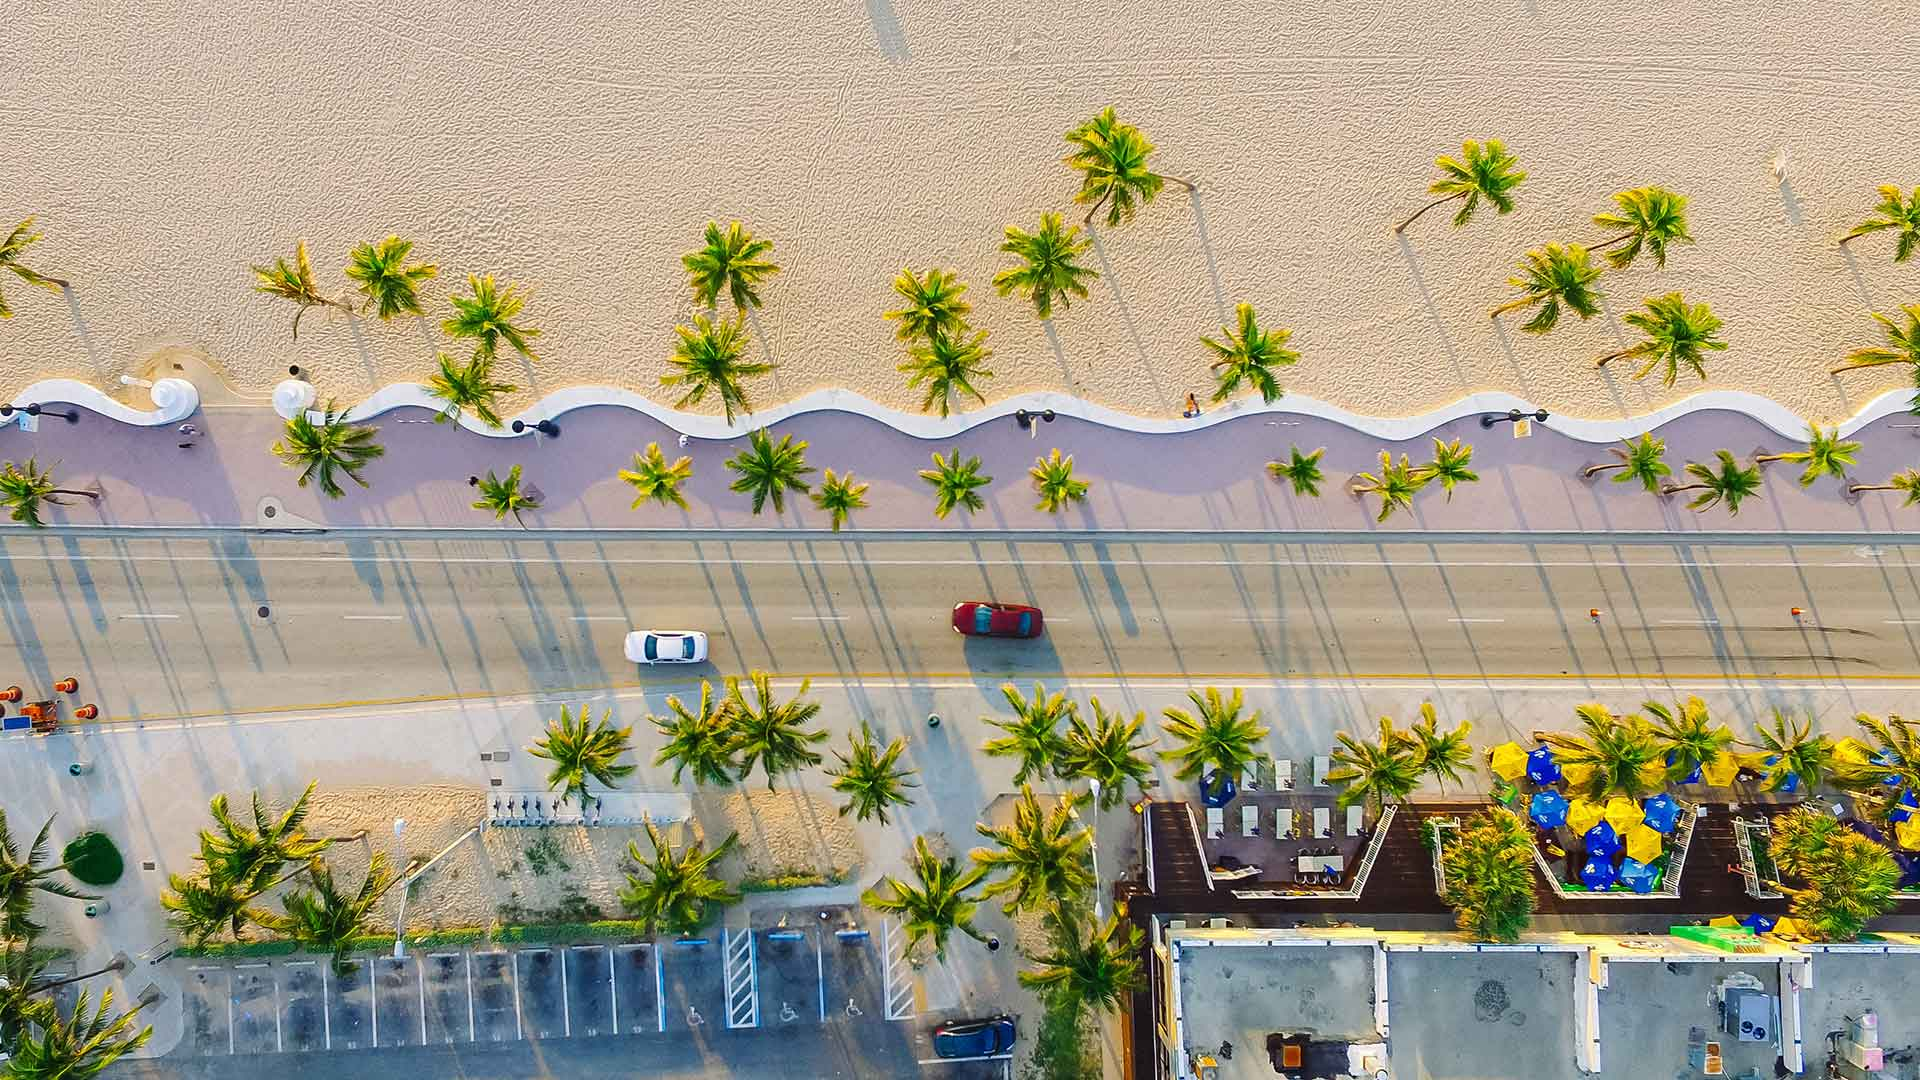 Shoreline drone photography experts